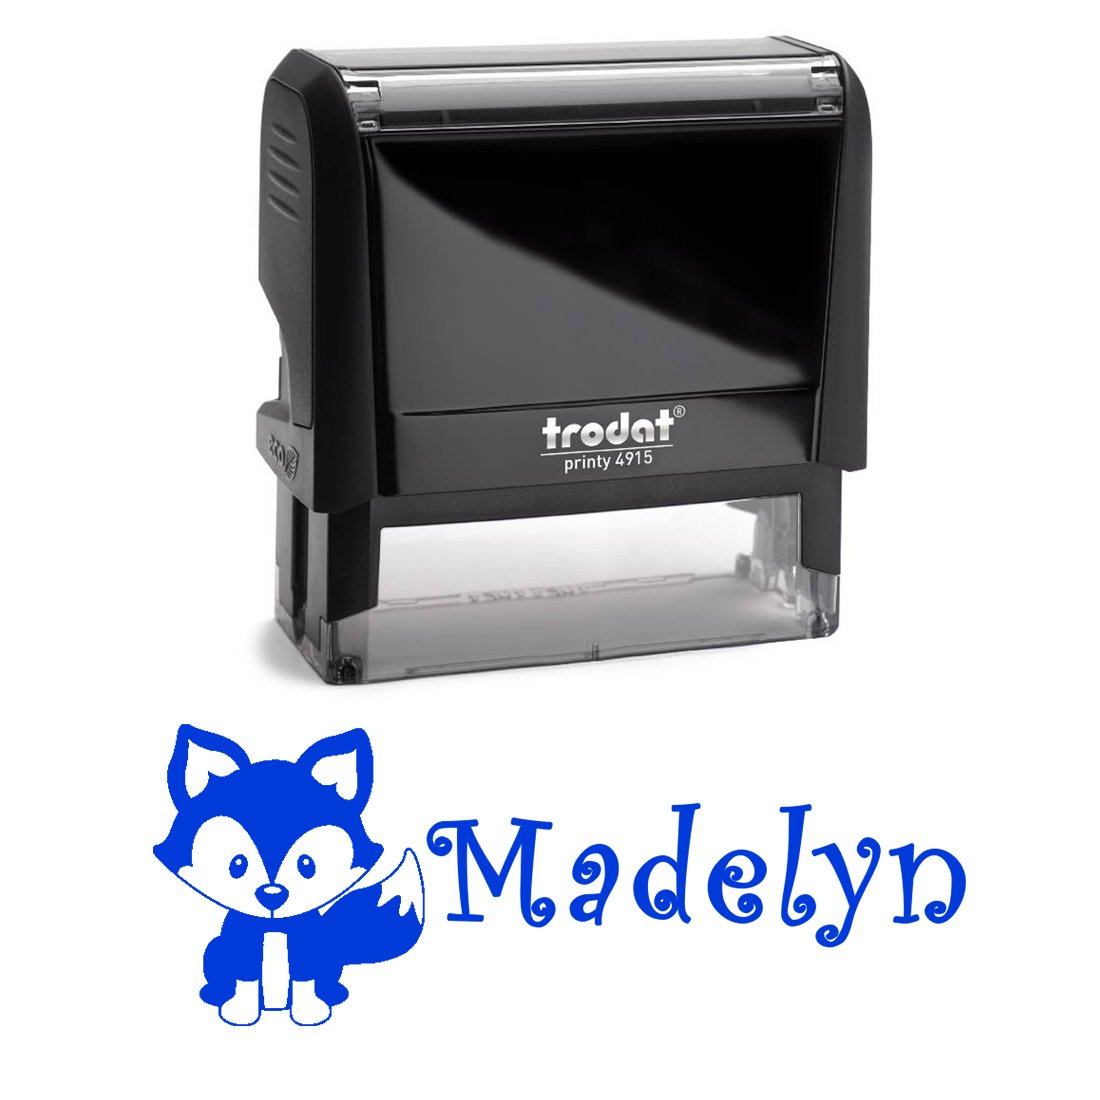 Personalized Name Self Inking Stamp, Fox Stamp, Custom Stylish Font, Customized with Name, Rubber Stamp, Naming Stamp, Children's Signature Stamper, School Book Label Name, Kids Stamp (Blue)